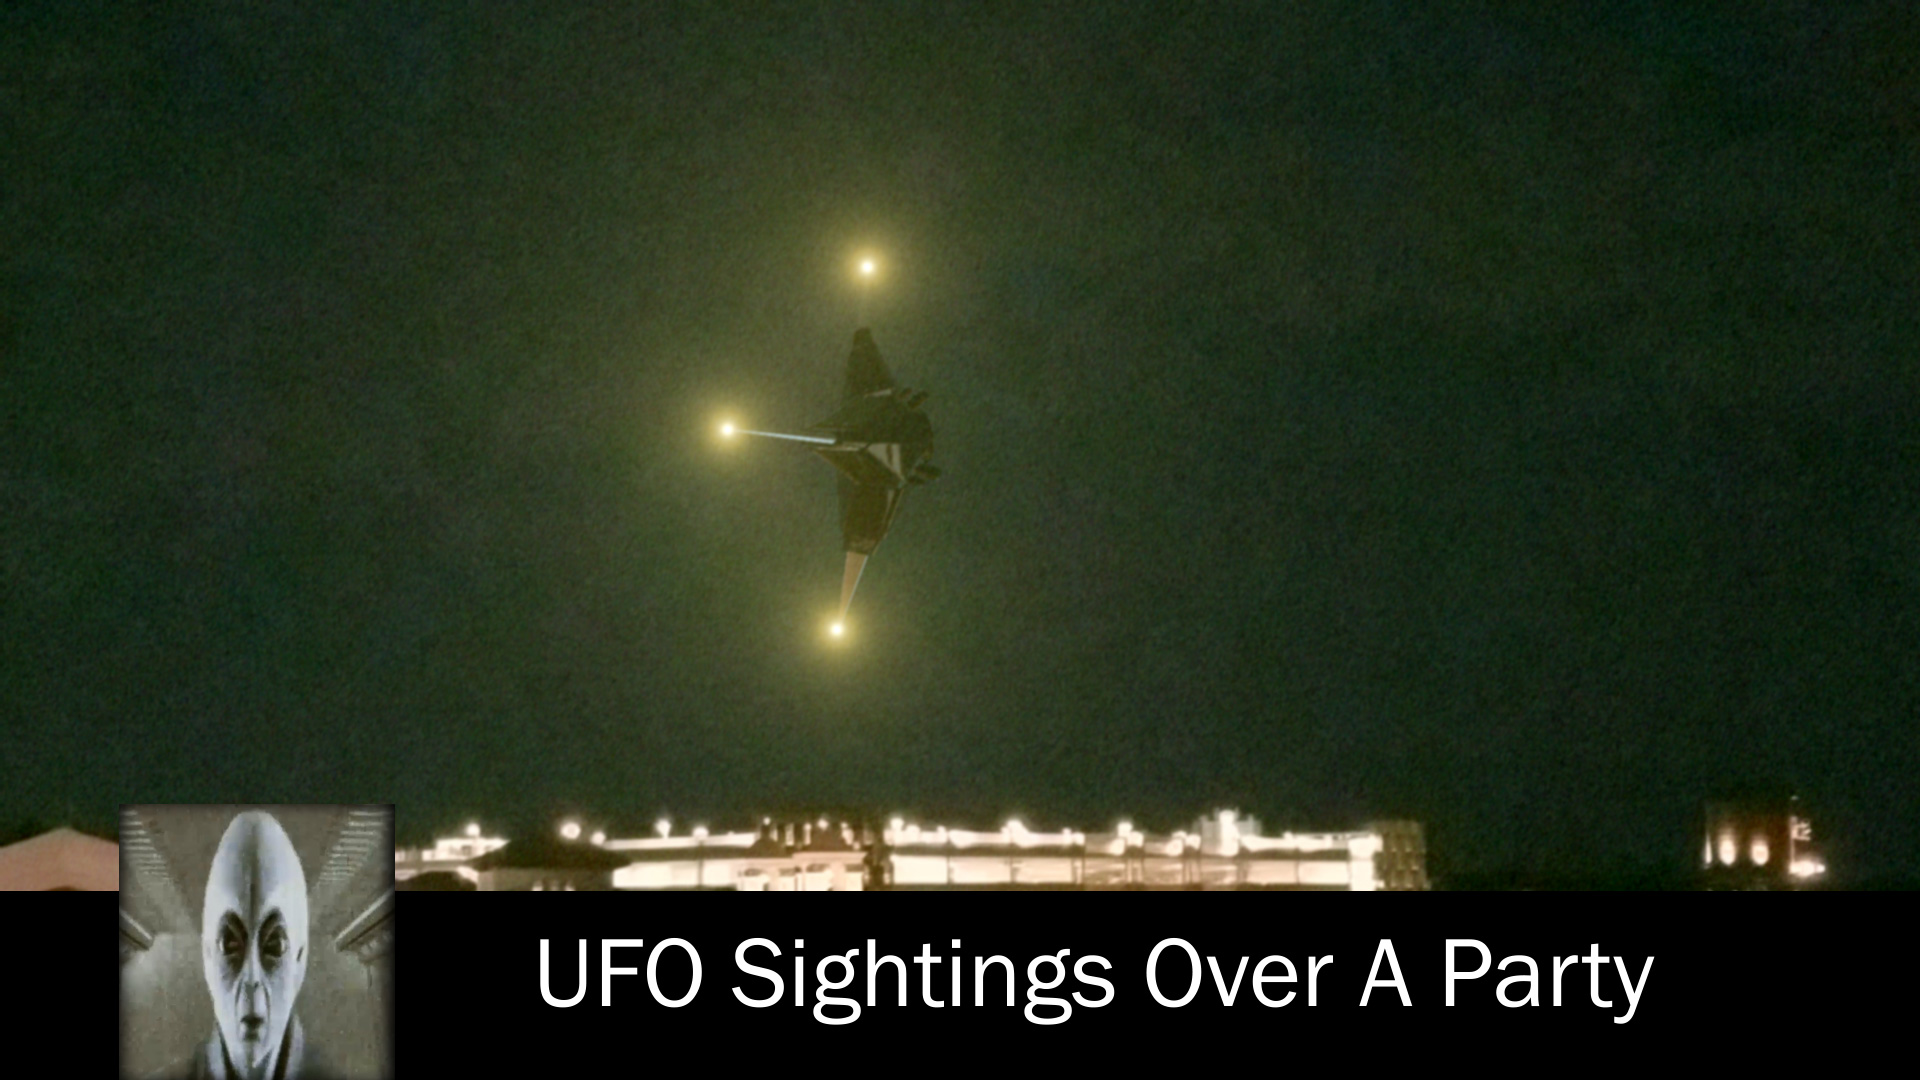 UFO Sightings Over A Party July 12th 2017